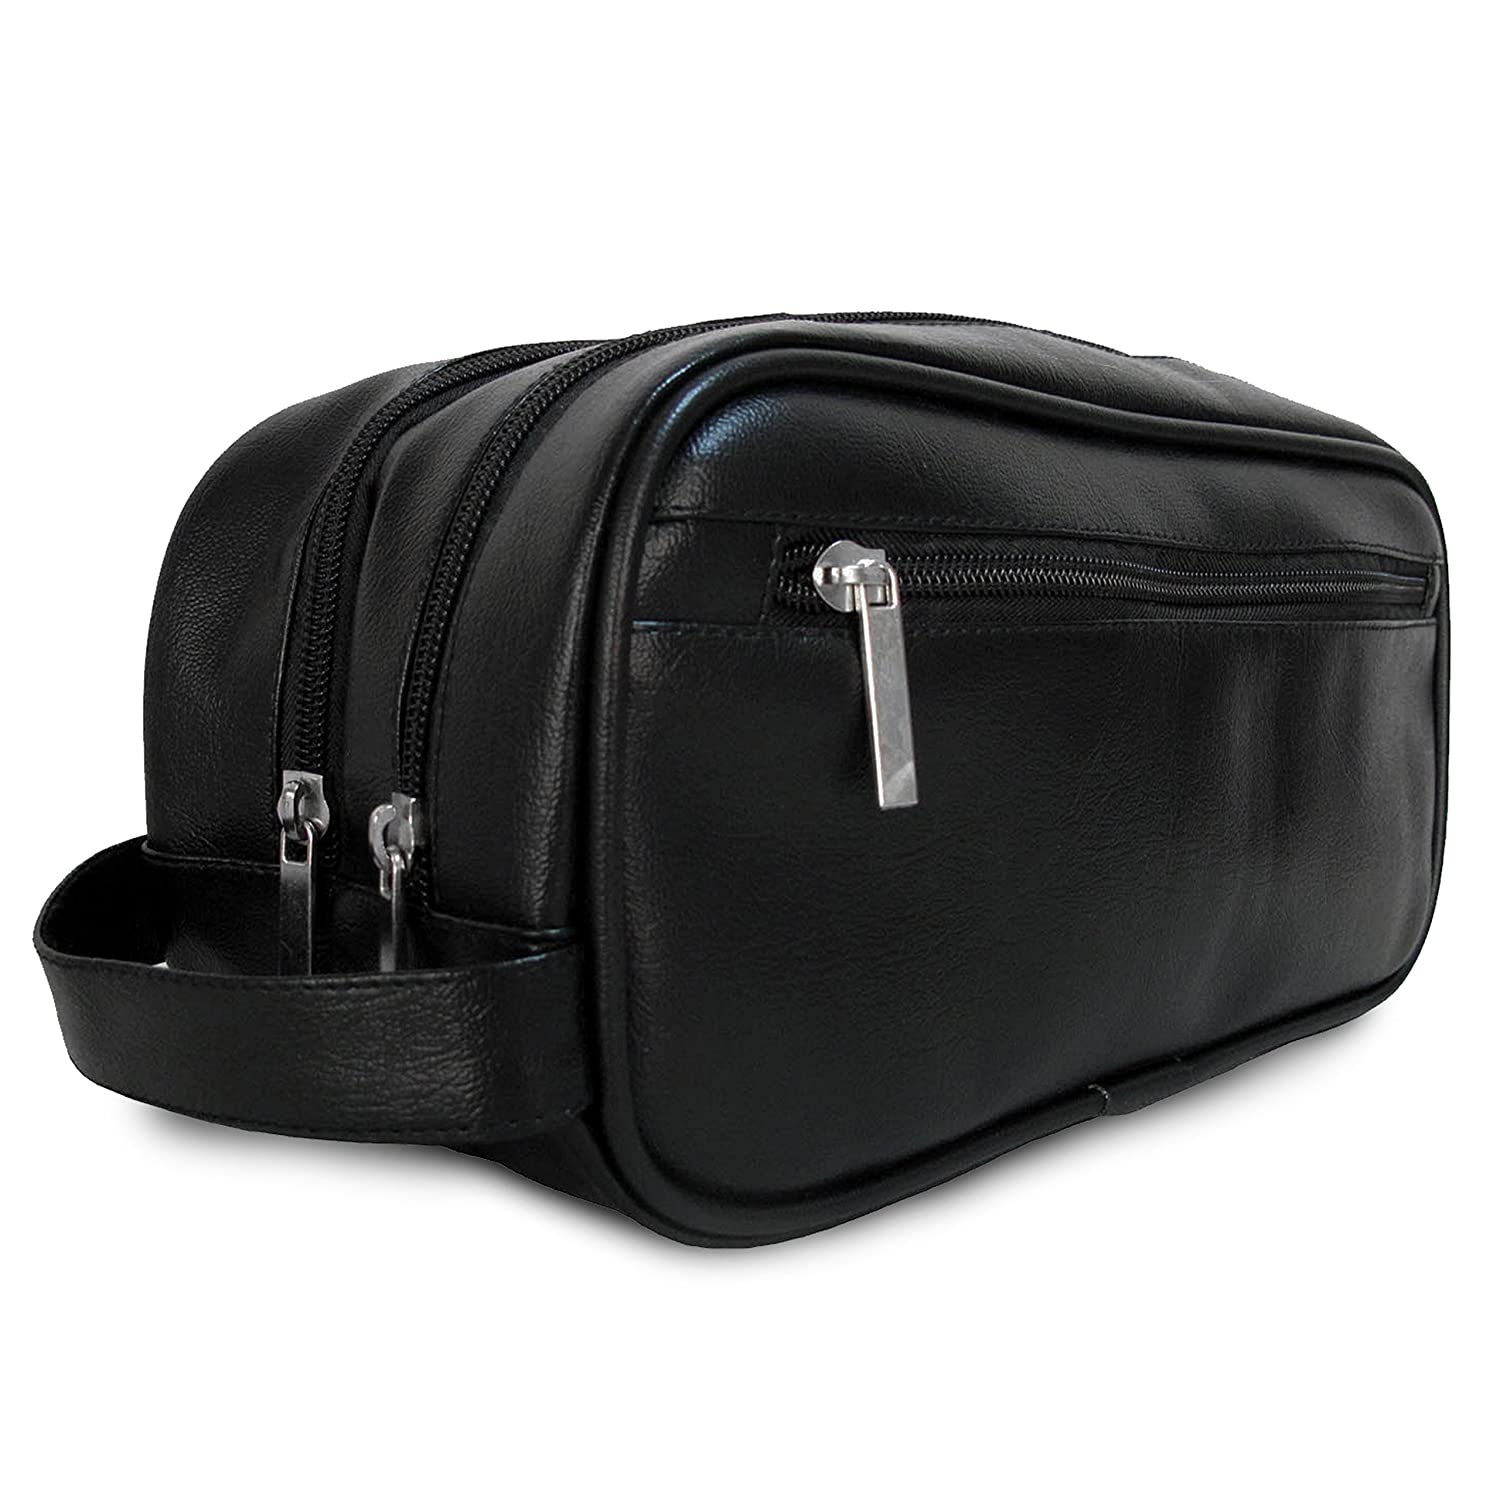 Roll Up Toiletry Bag